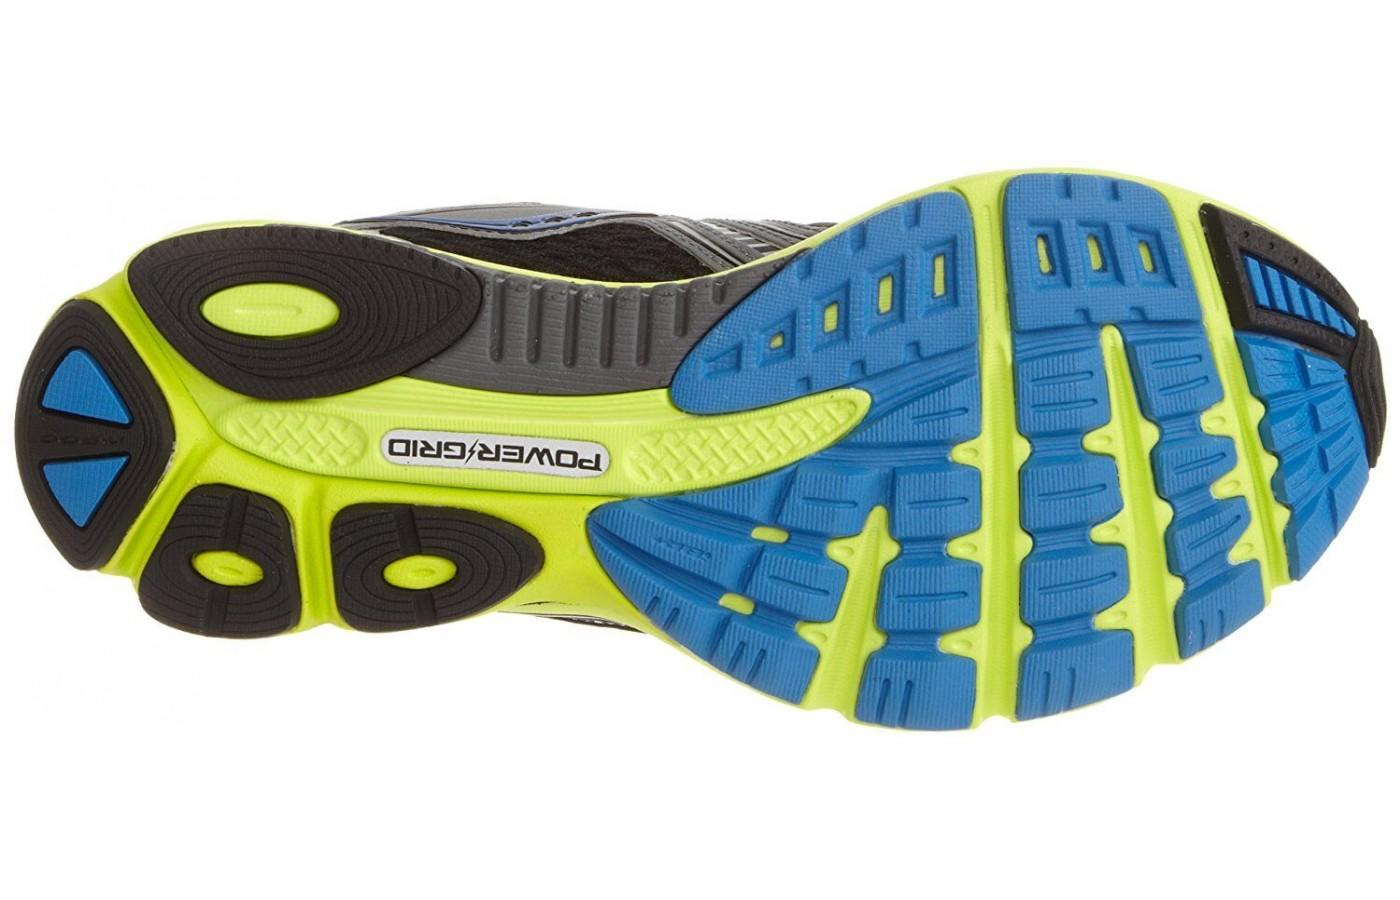 Saucony Cortana 2 outsole with good traction for roads